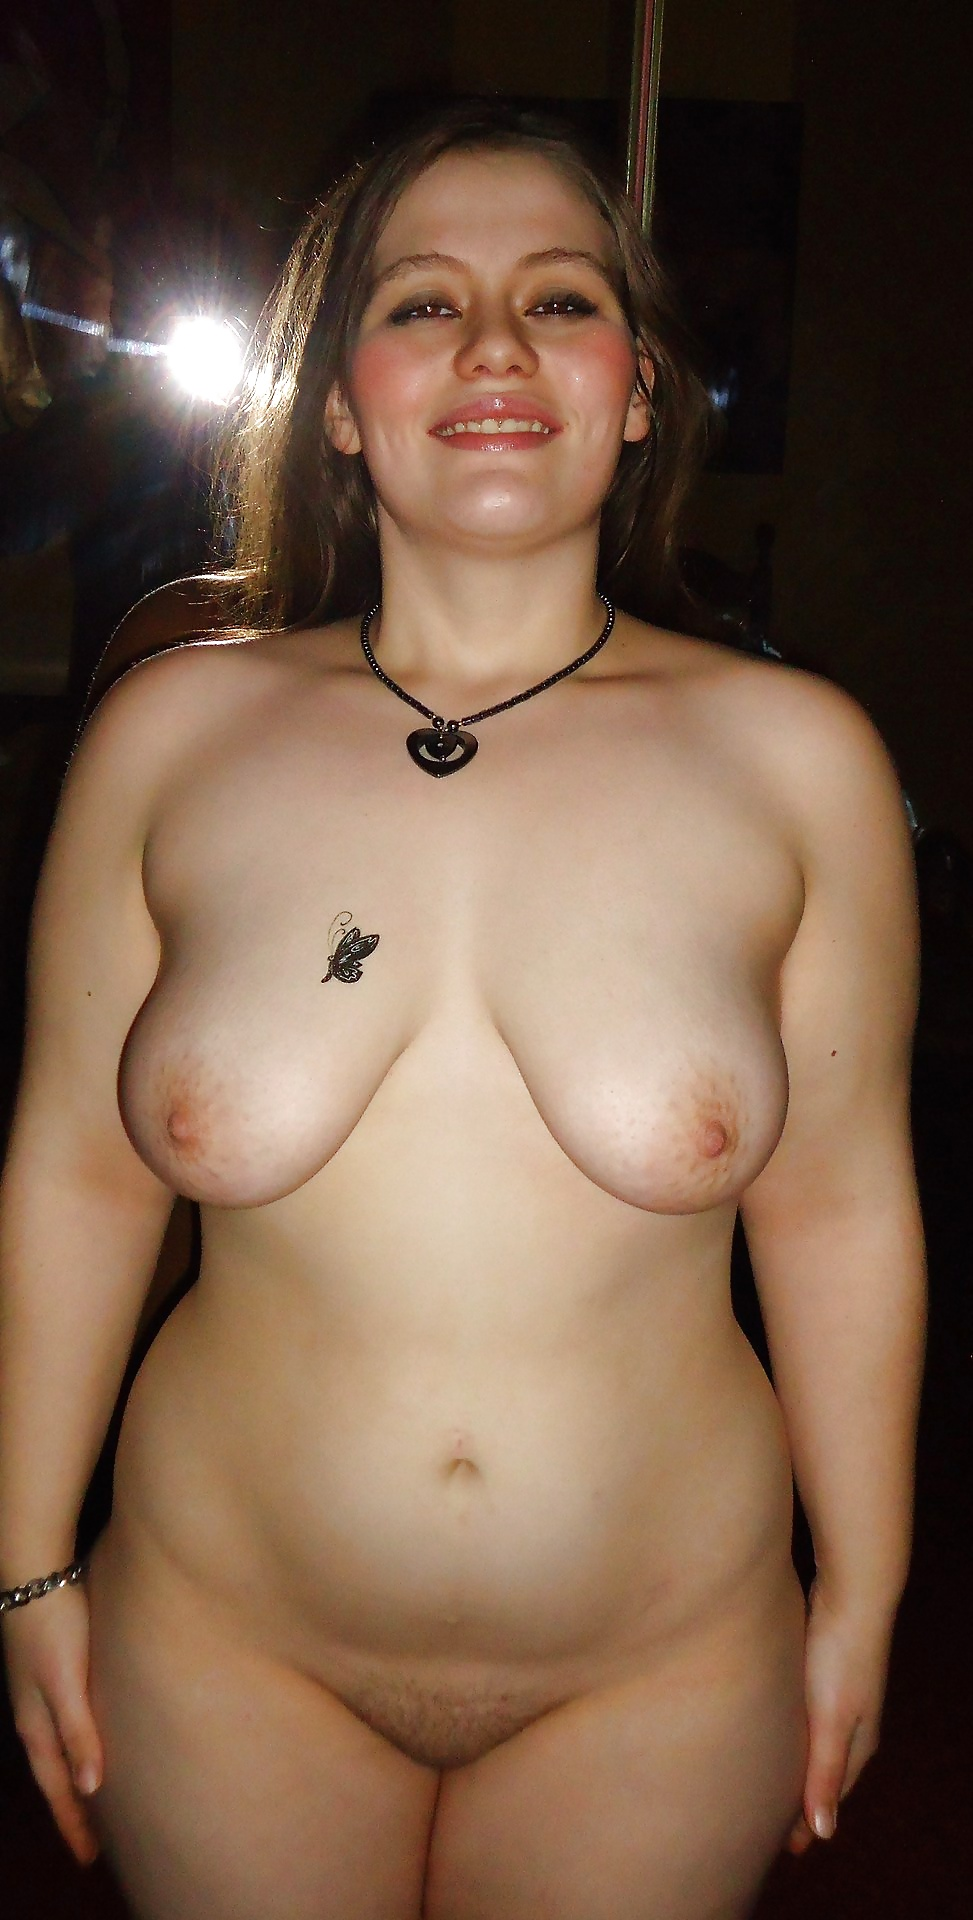 Slightly chubby amateur girls — pic 8